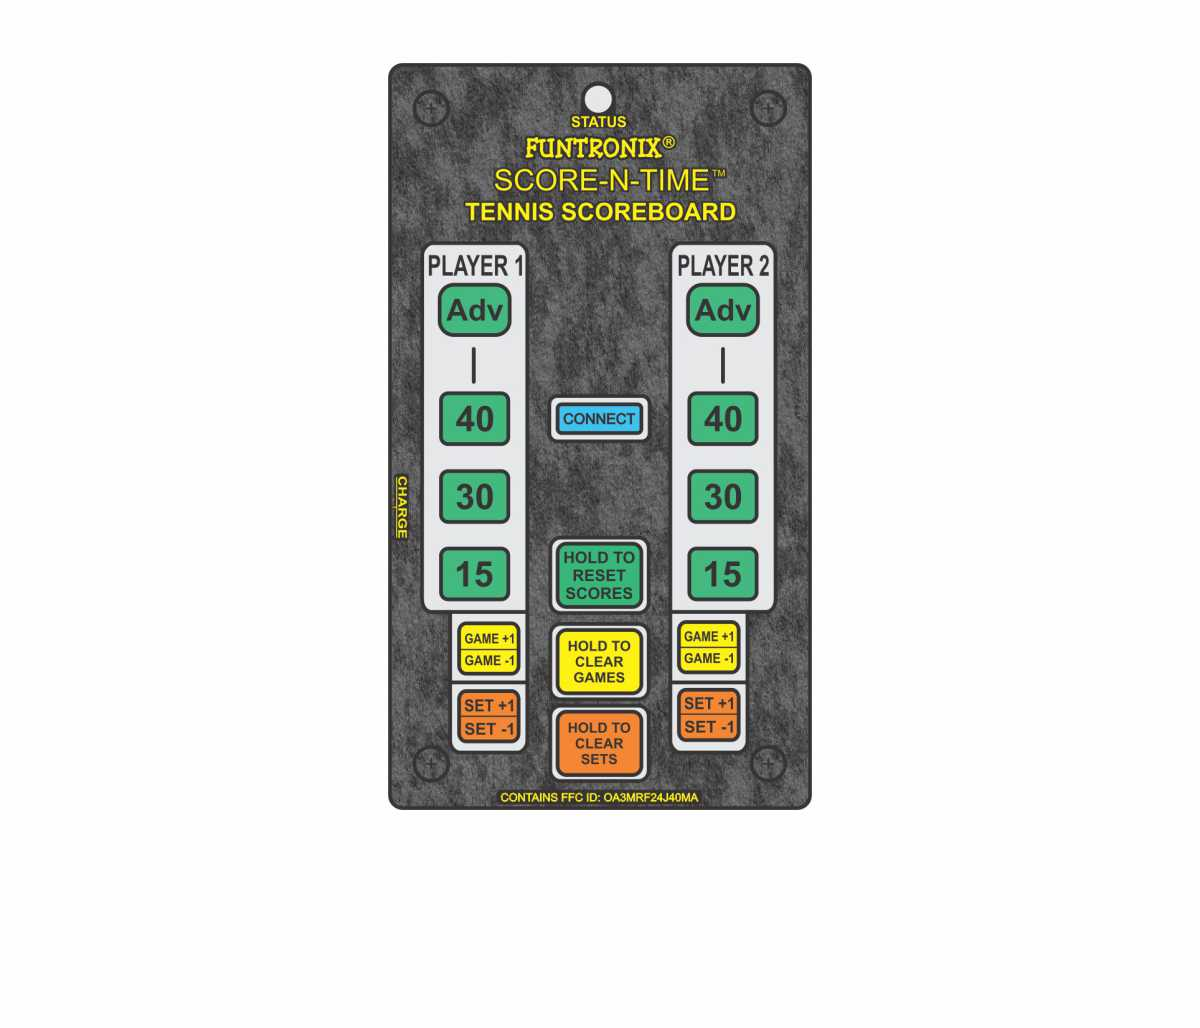 Portable Tennis Scoreboard Keypad